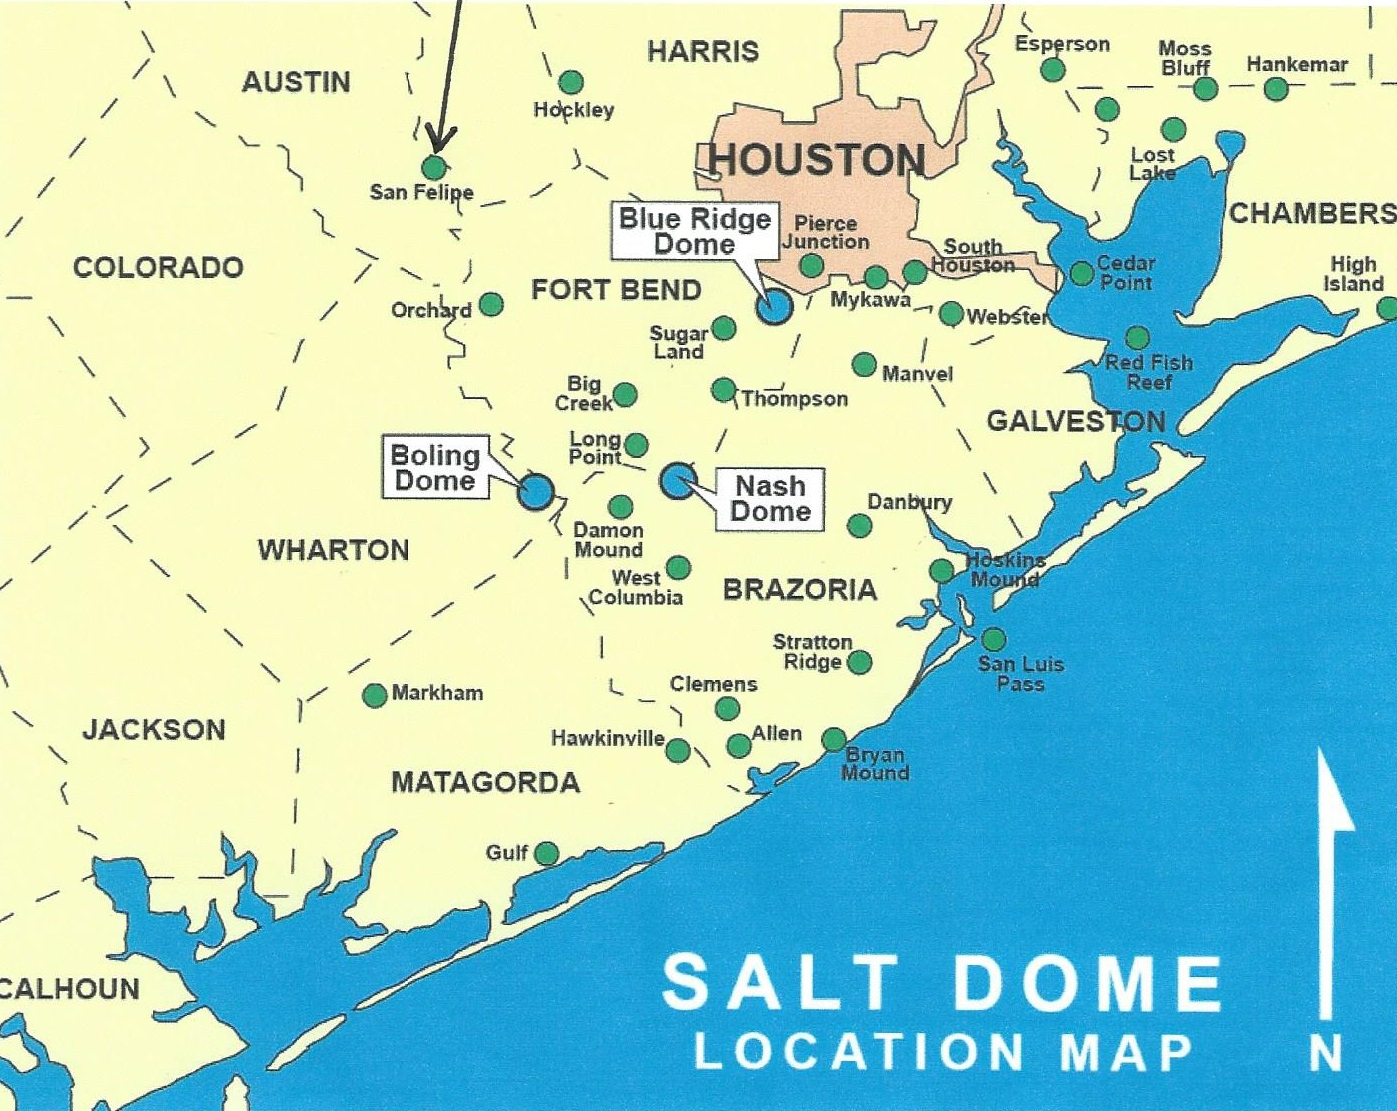 Texas Gulf Coast Map And Travel Information | Download Free Texas - Texas Gulf Coast Beaches Map